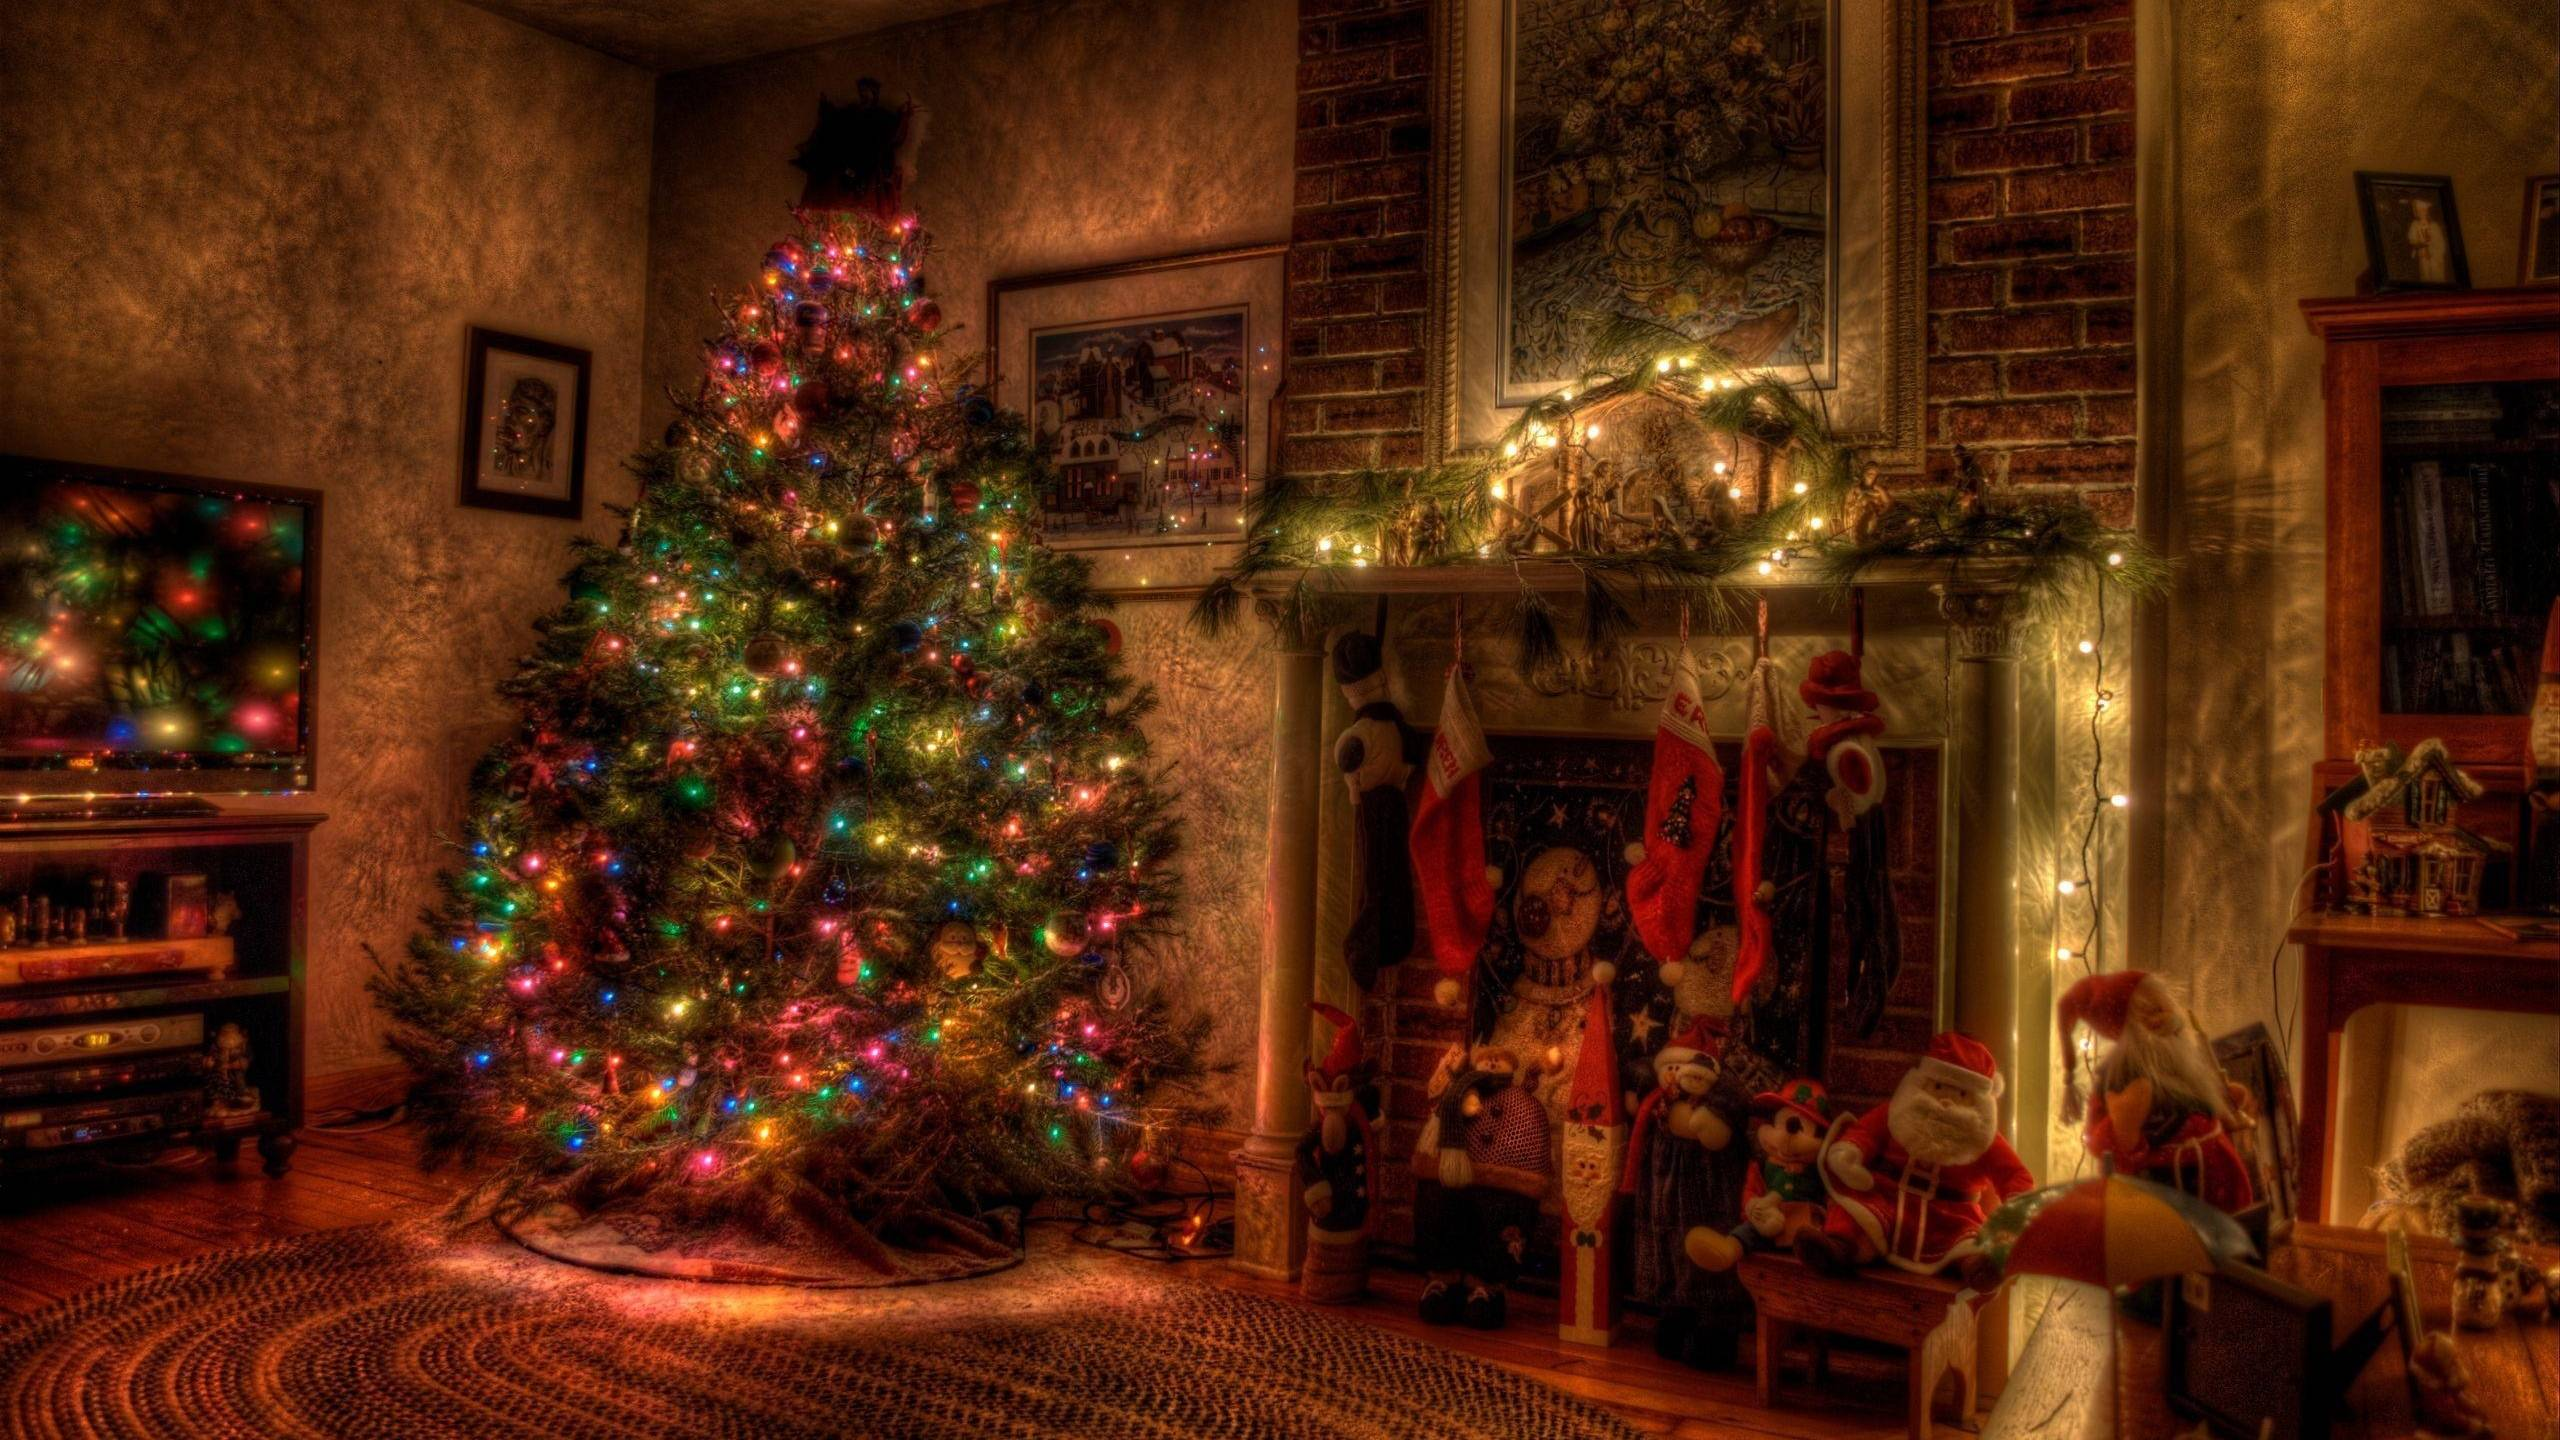 Christmas Fireplace Background Images amp Pictures   Becuo 2560x1440